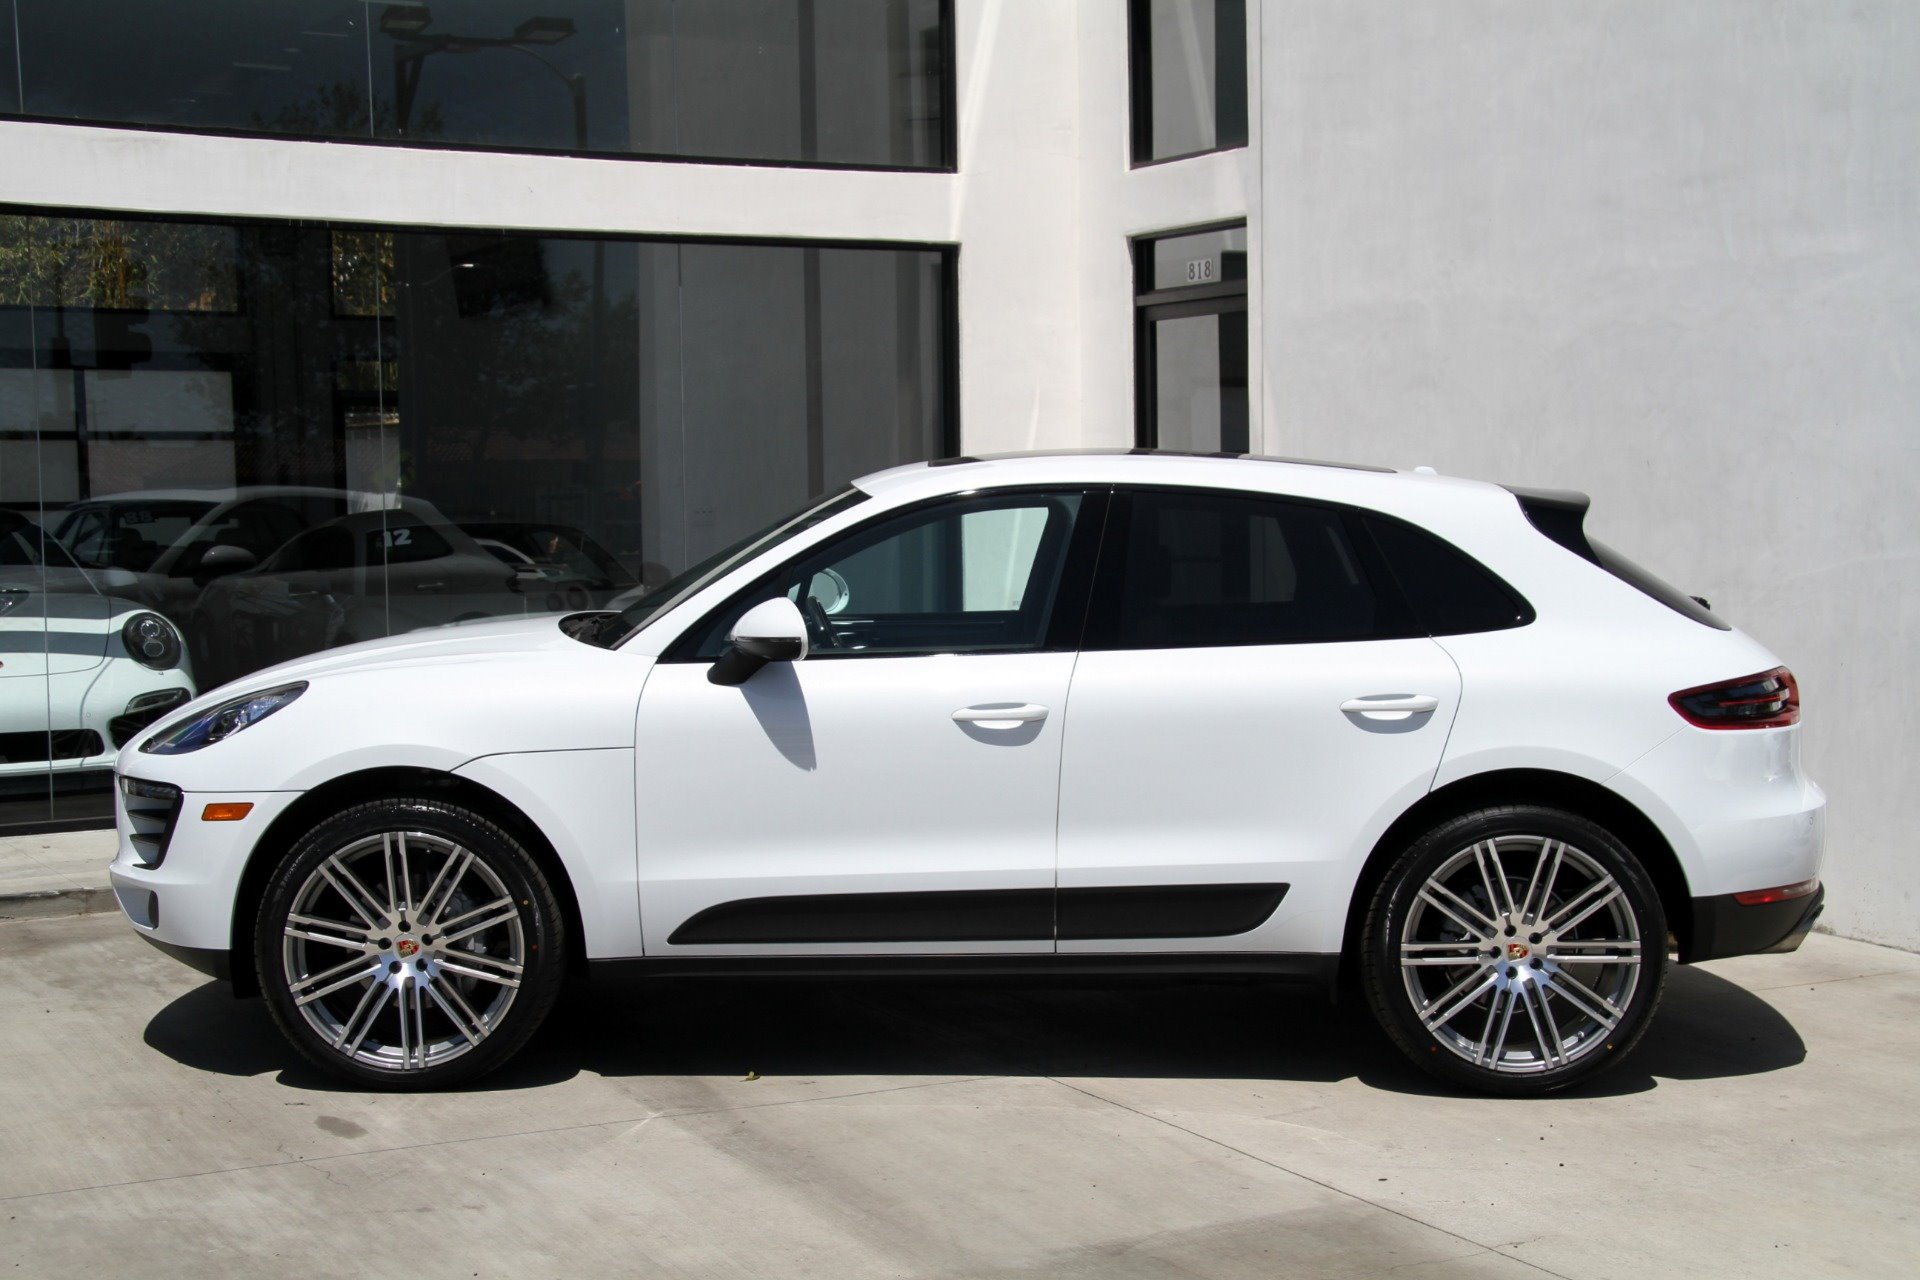 New 2019 Porsche-Macan Base Macan for sale $49,900 at M and V Leasing in Brooklyn NY 11223 1